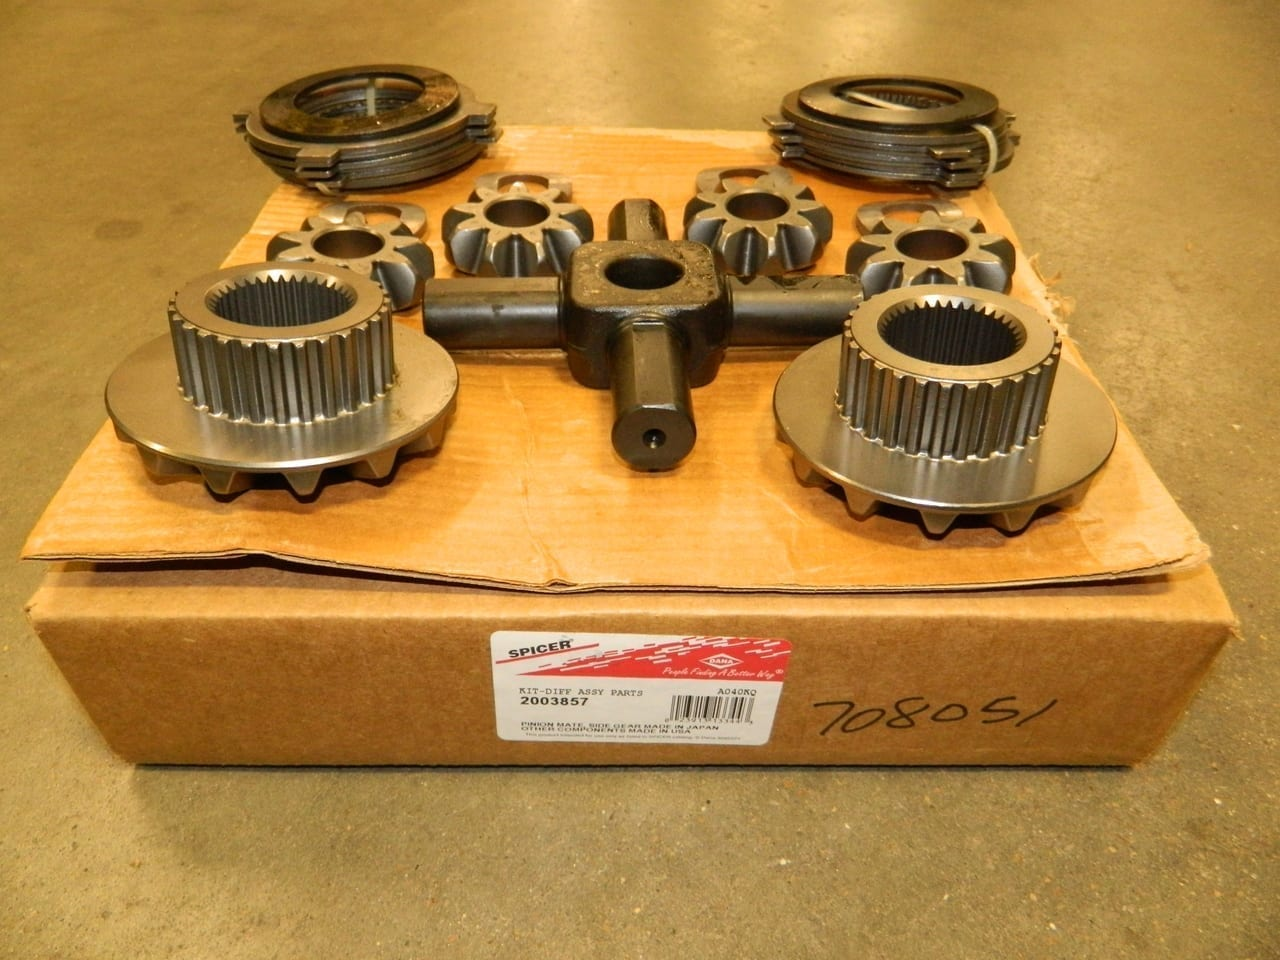 Dana 80 Trac Lok Differential 35 Spline Internal Kit Spider Axle Gear Clutch Pack Ford Dodge 1999+